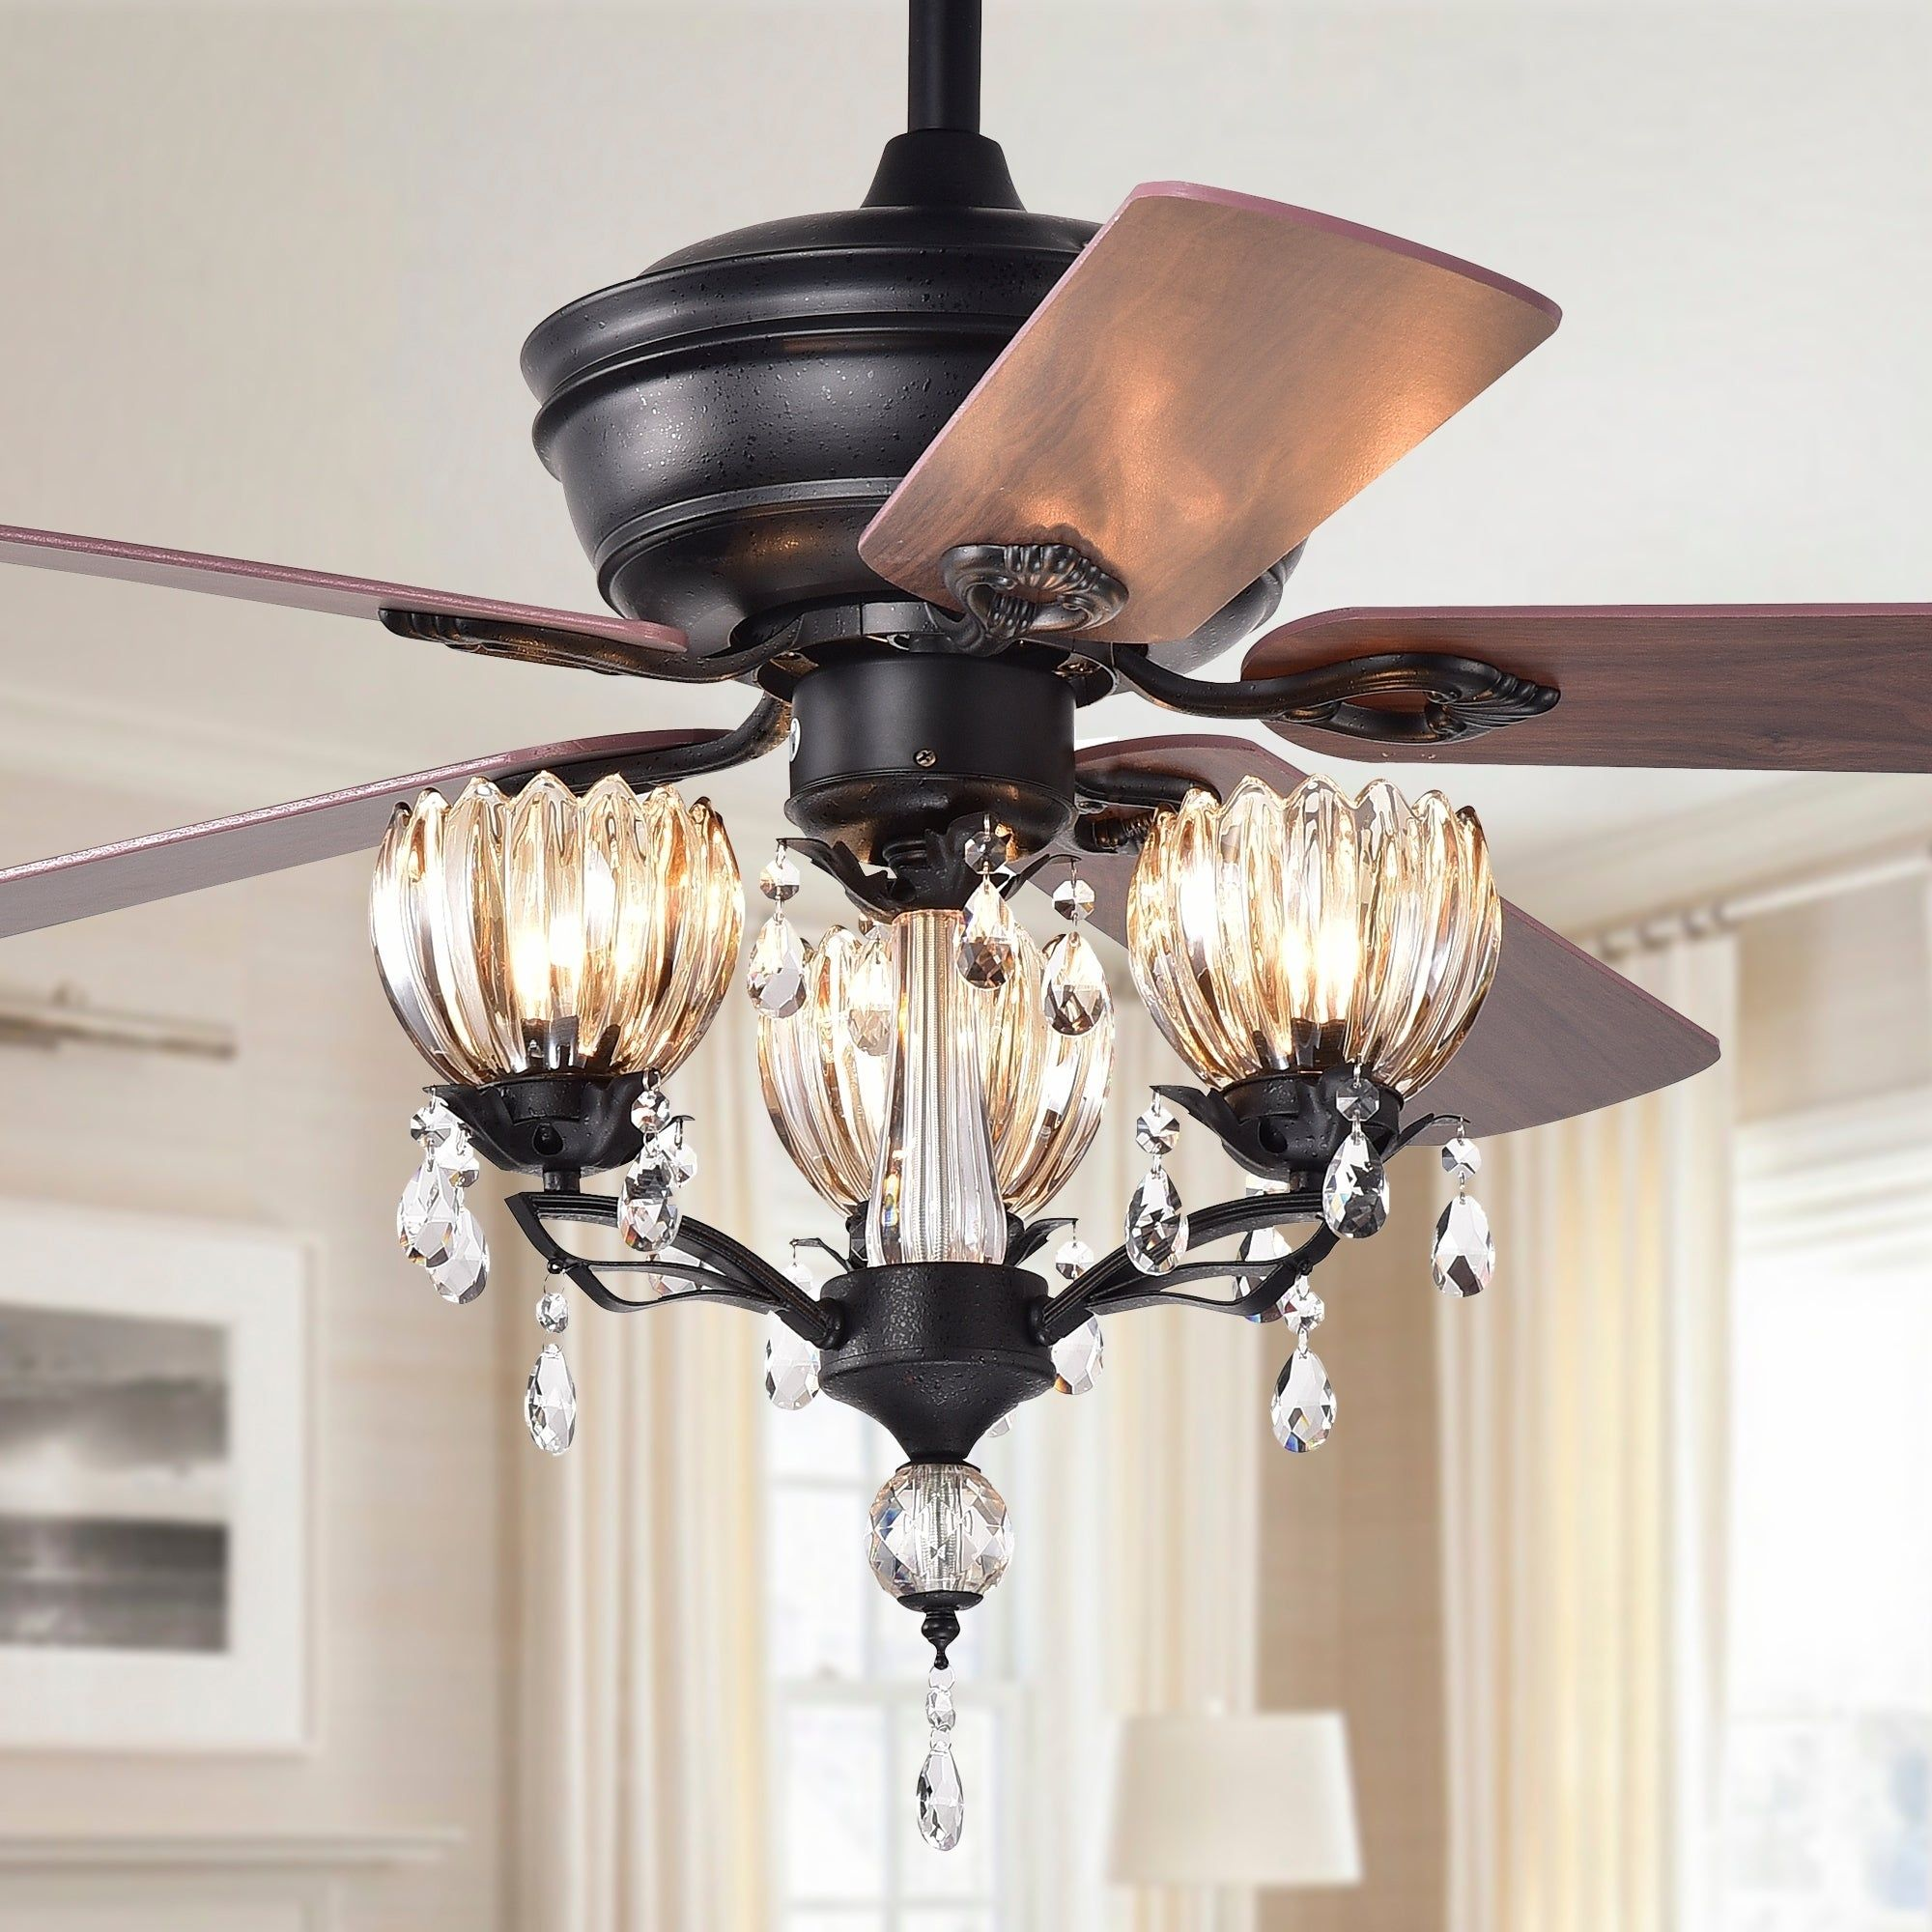 Garlow matte black 5blade lighted ceiling fan with